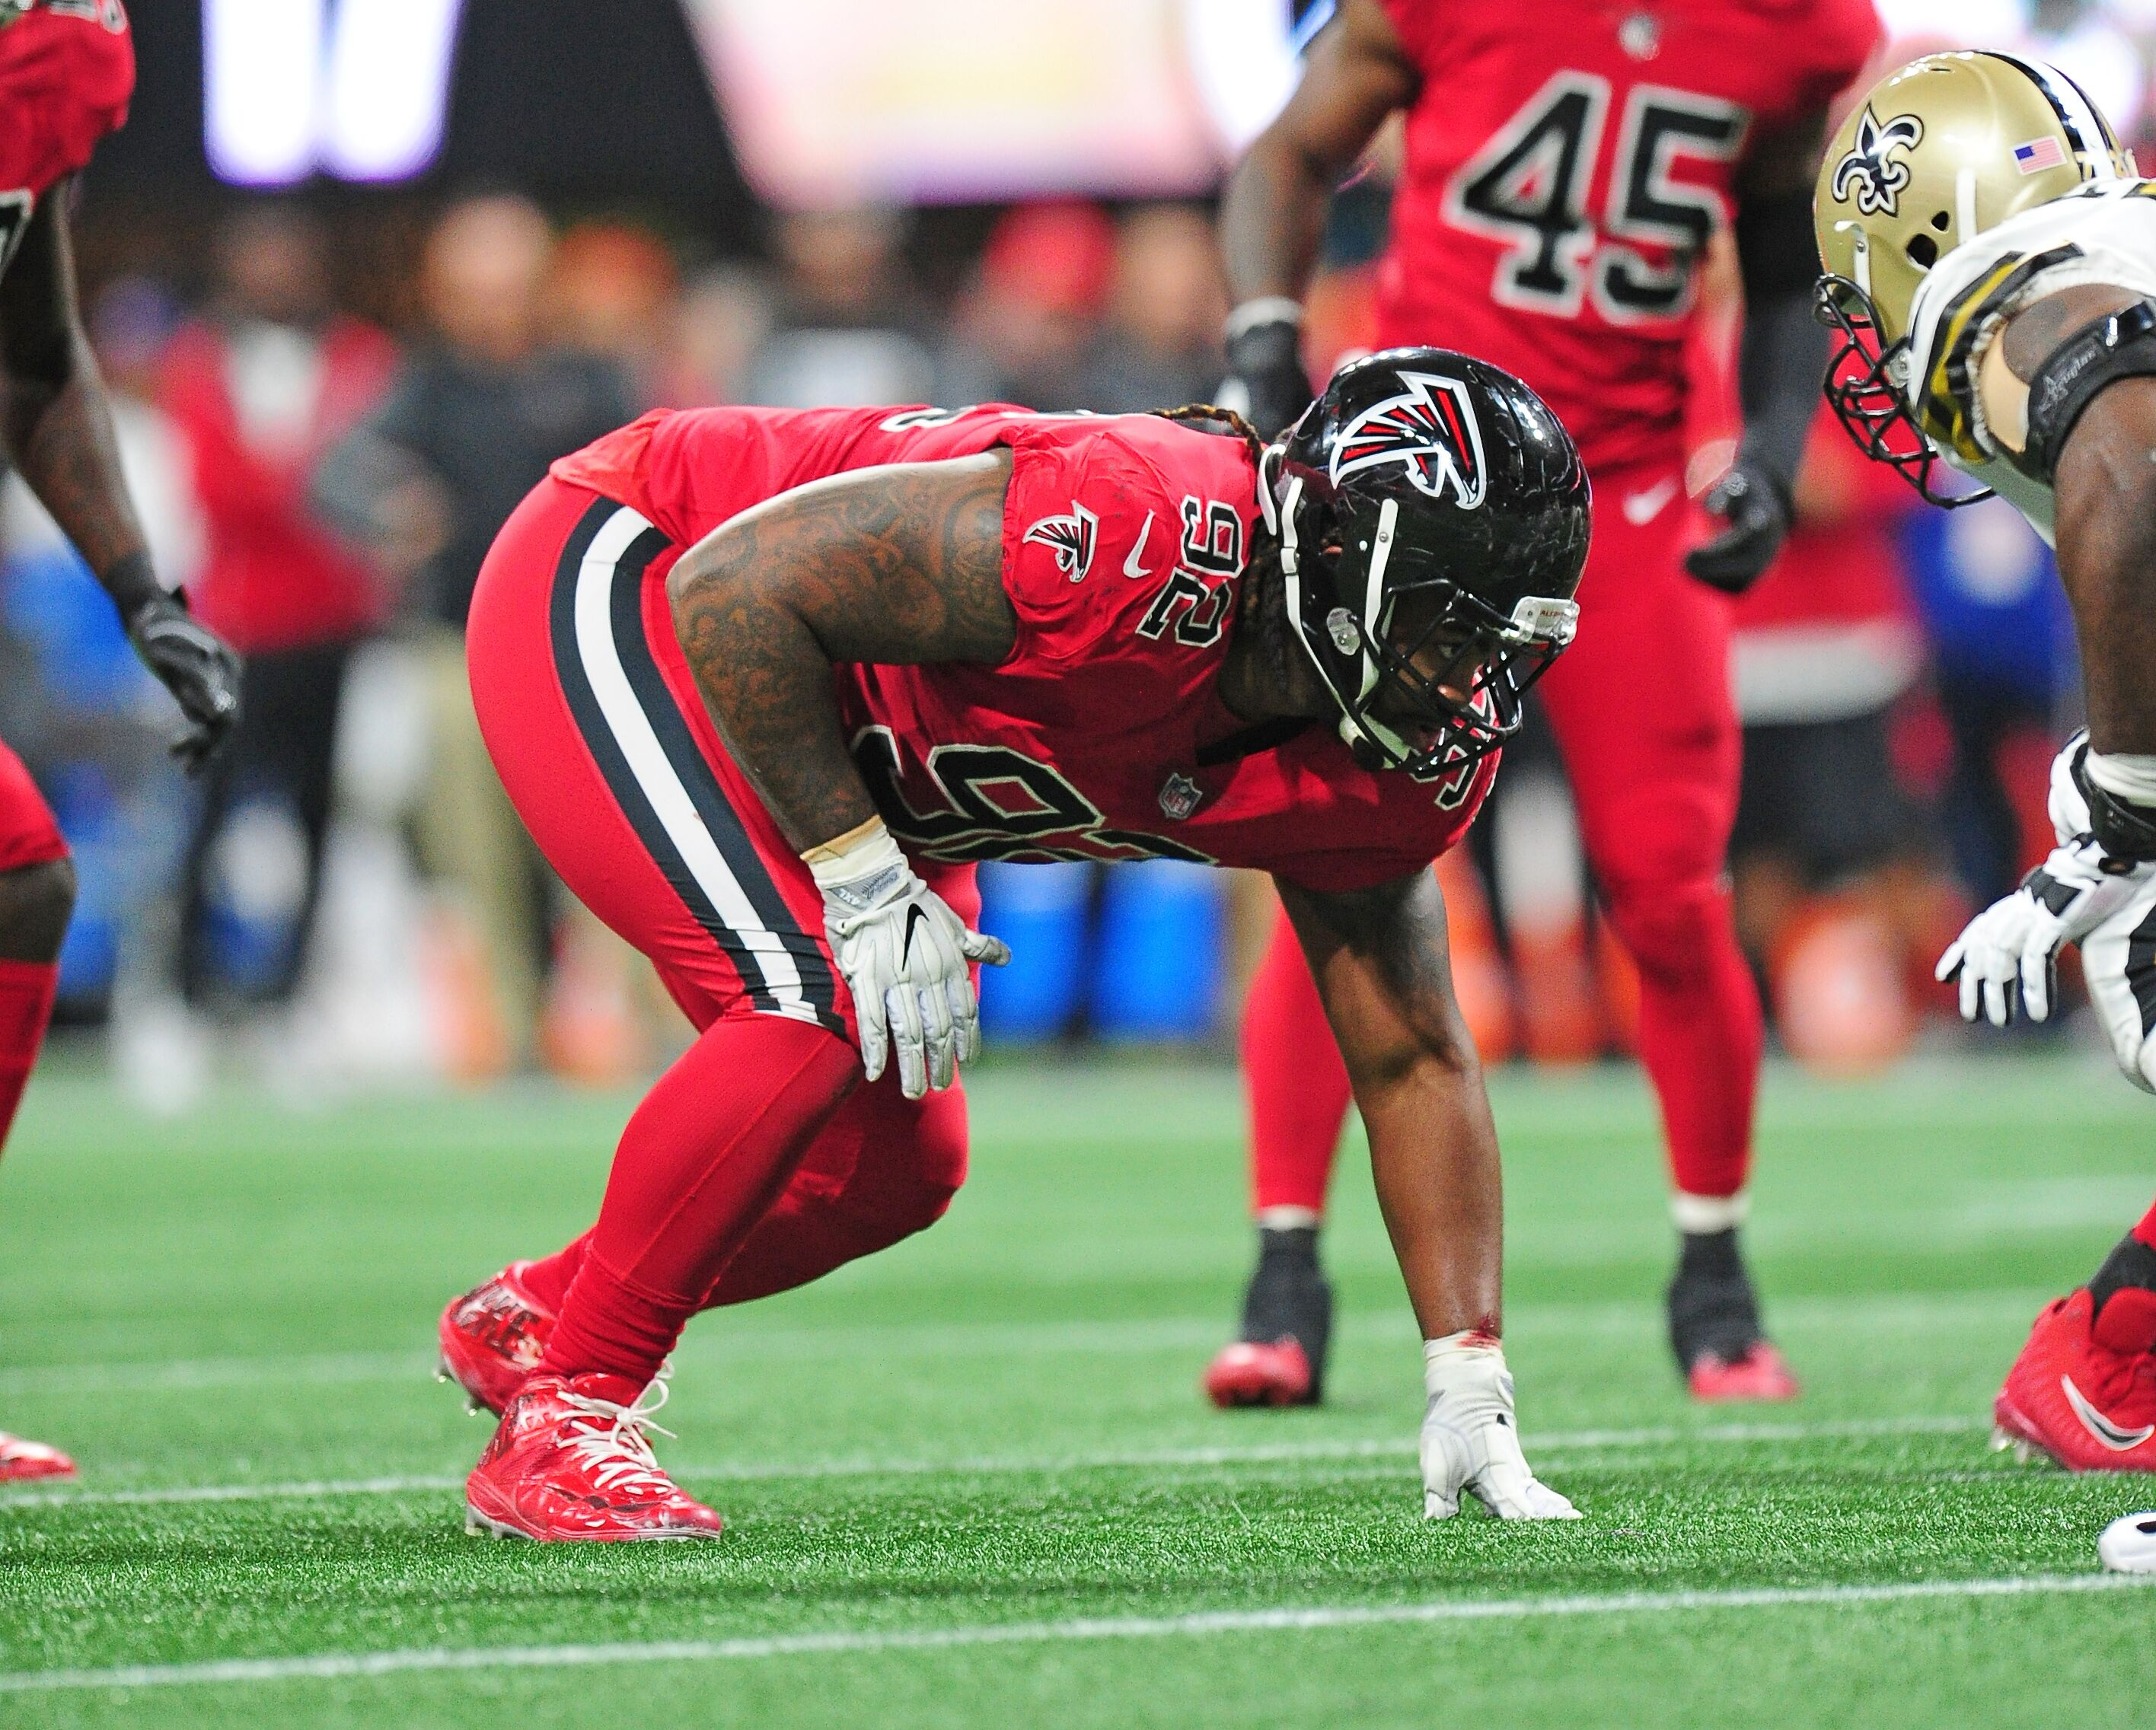 923093844-new-orleans-saints-v-atlanta-falcons.jpg